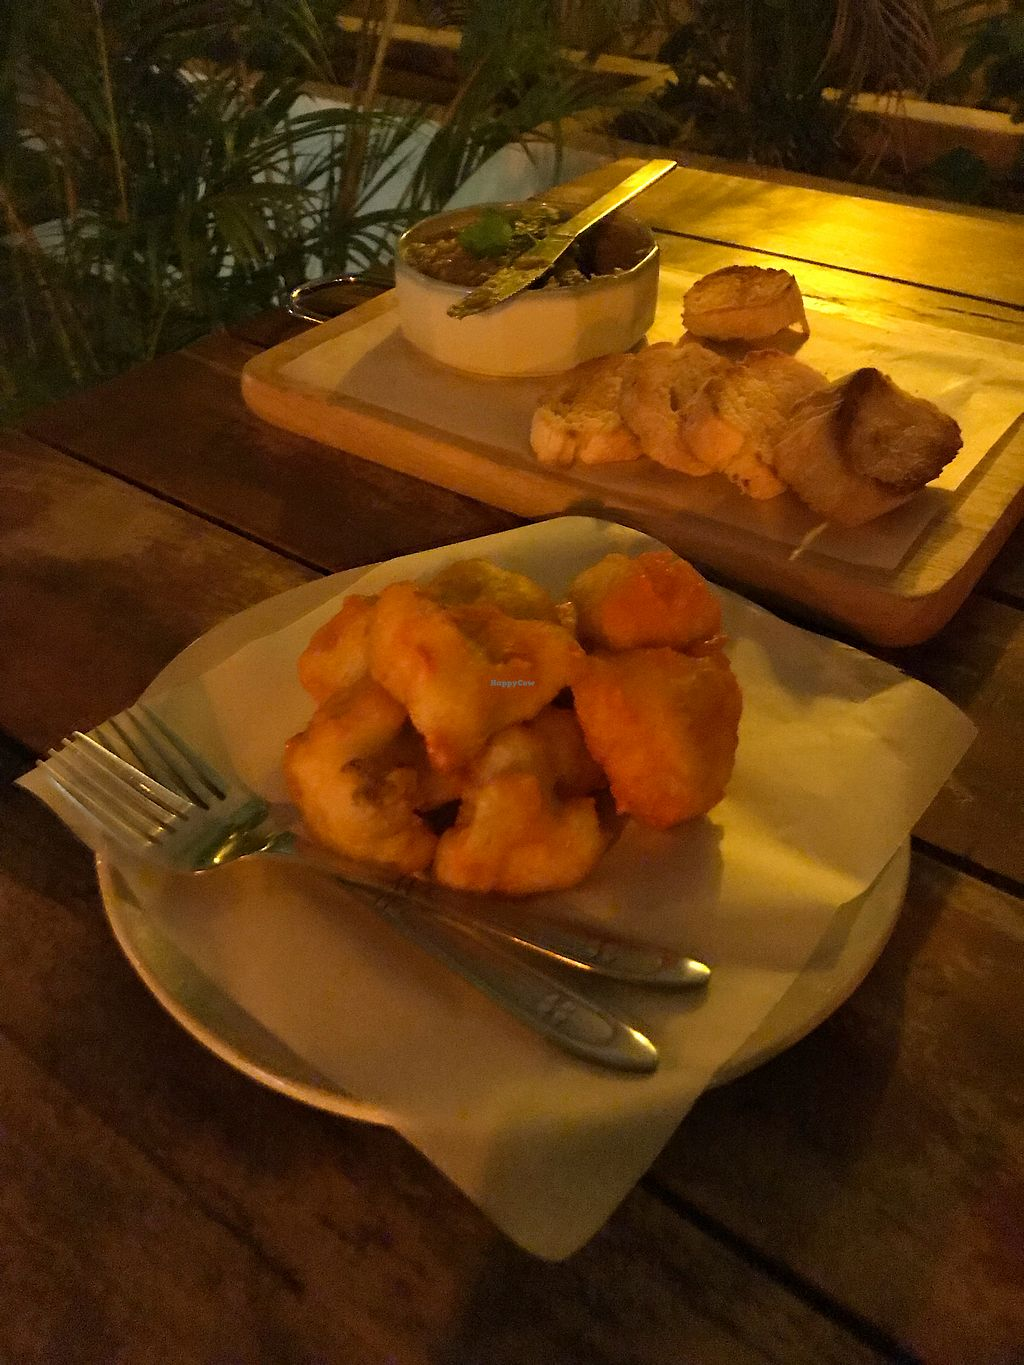 """Photo of Moringa Bar & Restaurant  by <a href=""""/members/profile/_Leila"""">_Leila</a> <br/>Buffalo cauliflower wings <br/> December 27, 2017  - <a href='/contact/abuse/image/103857/339448'>Report</a>"""